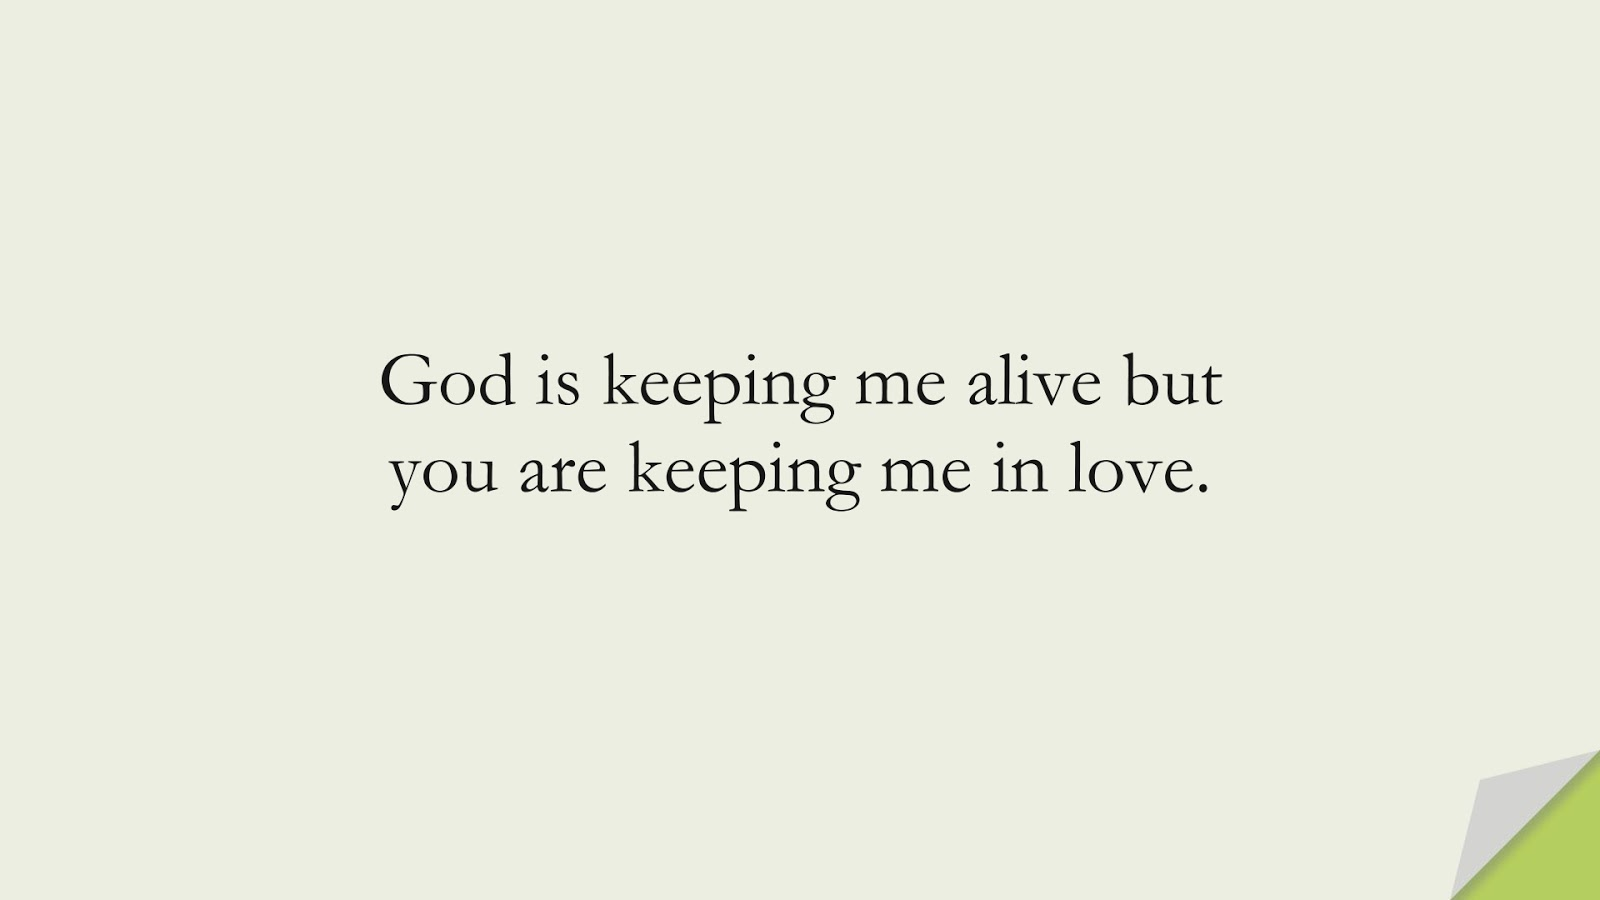 God is keeping me alive but you are keeping me in love.FALSE